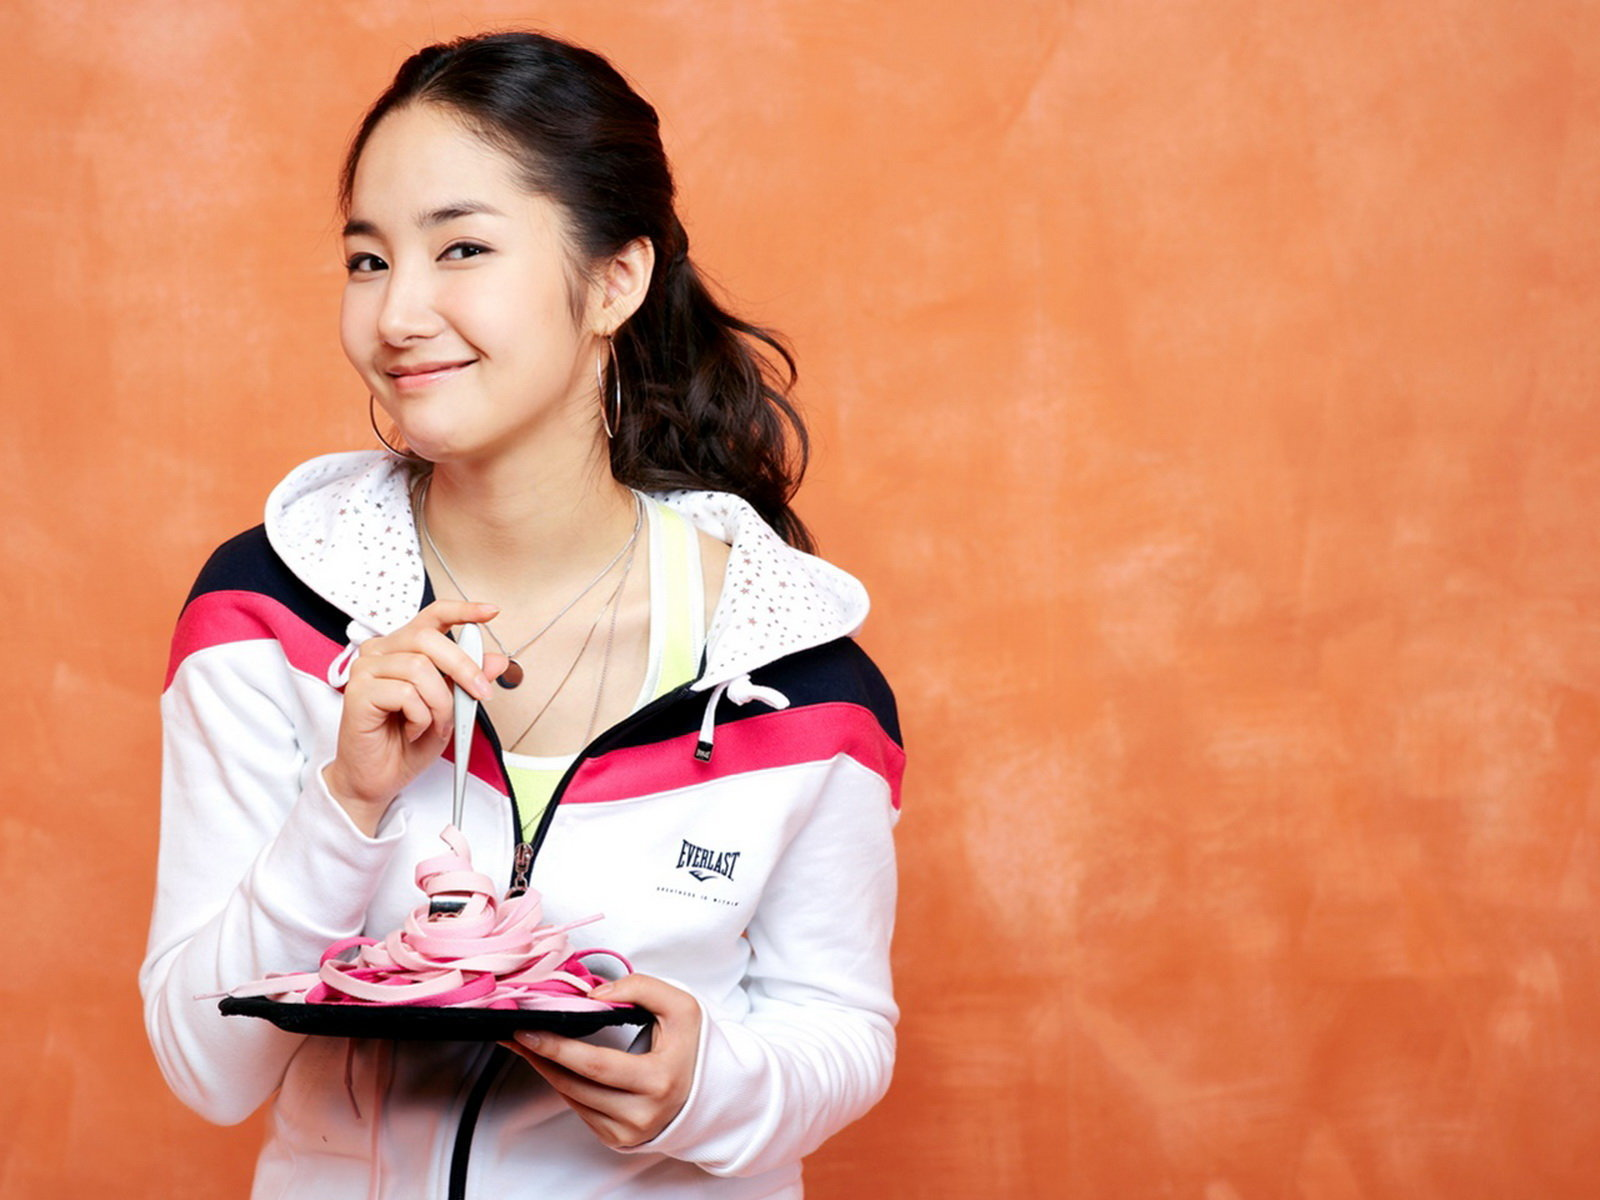 Park Min Young Wallpapers Images Photos Pictures Backgrounds 1600x1200